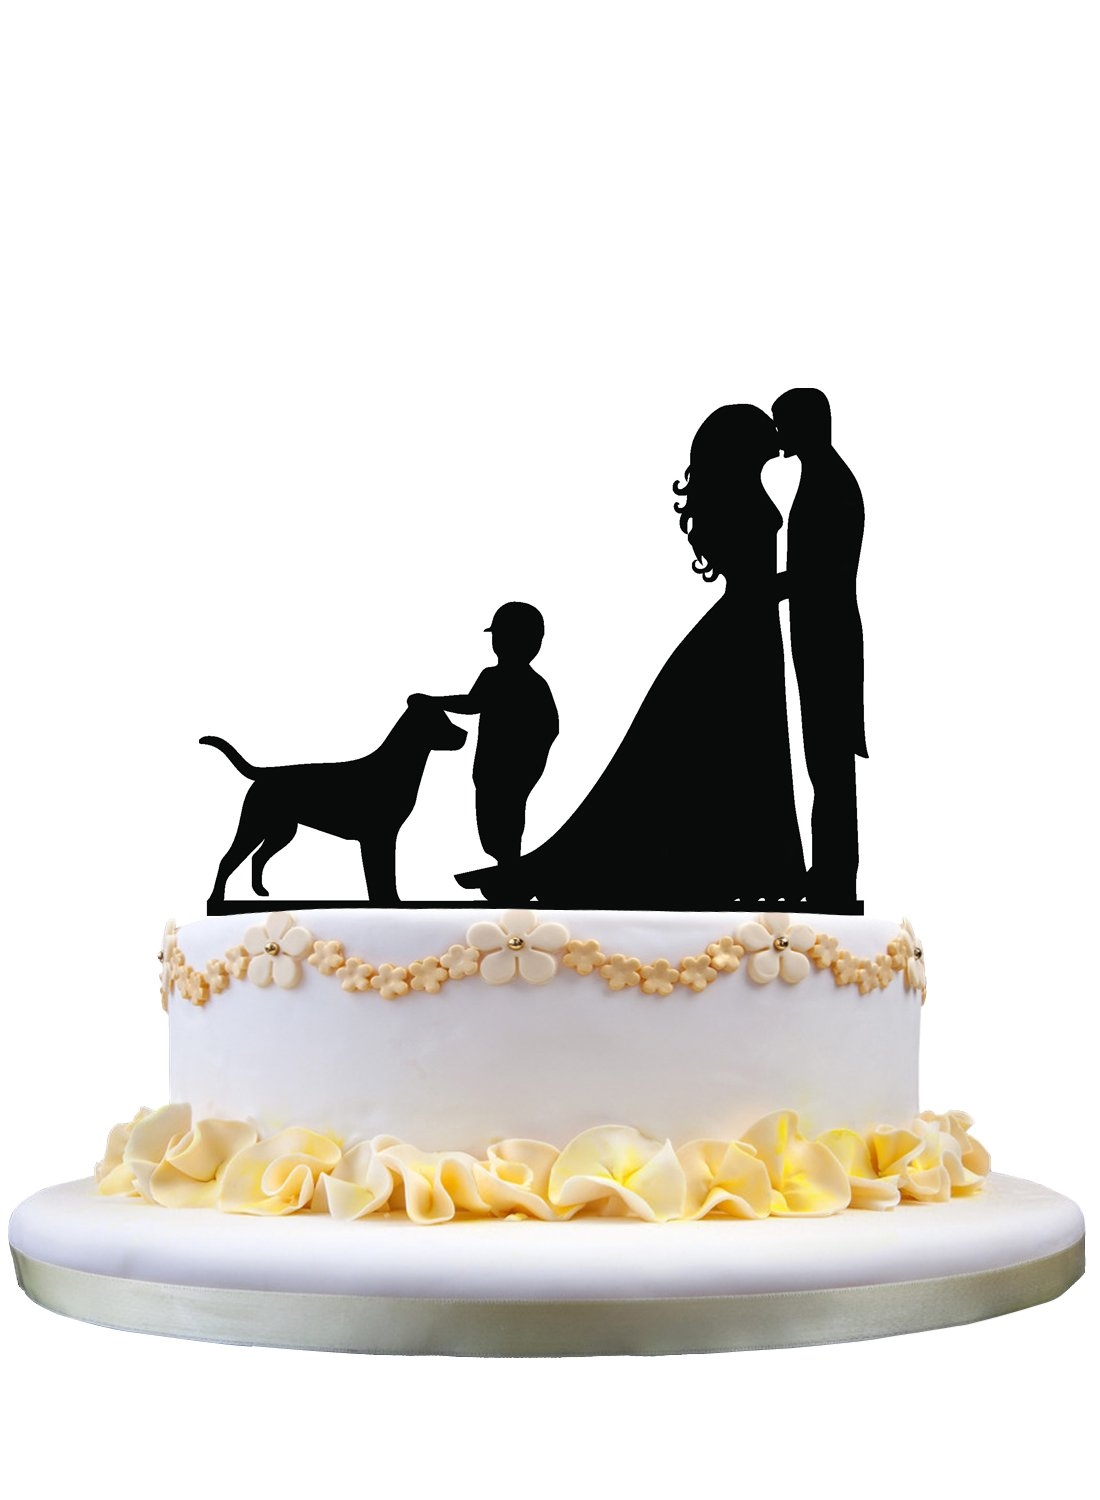 Wedding Cake Topper - Groom and Bride with a cute Boy and Dog pet acrylic topper